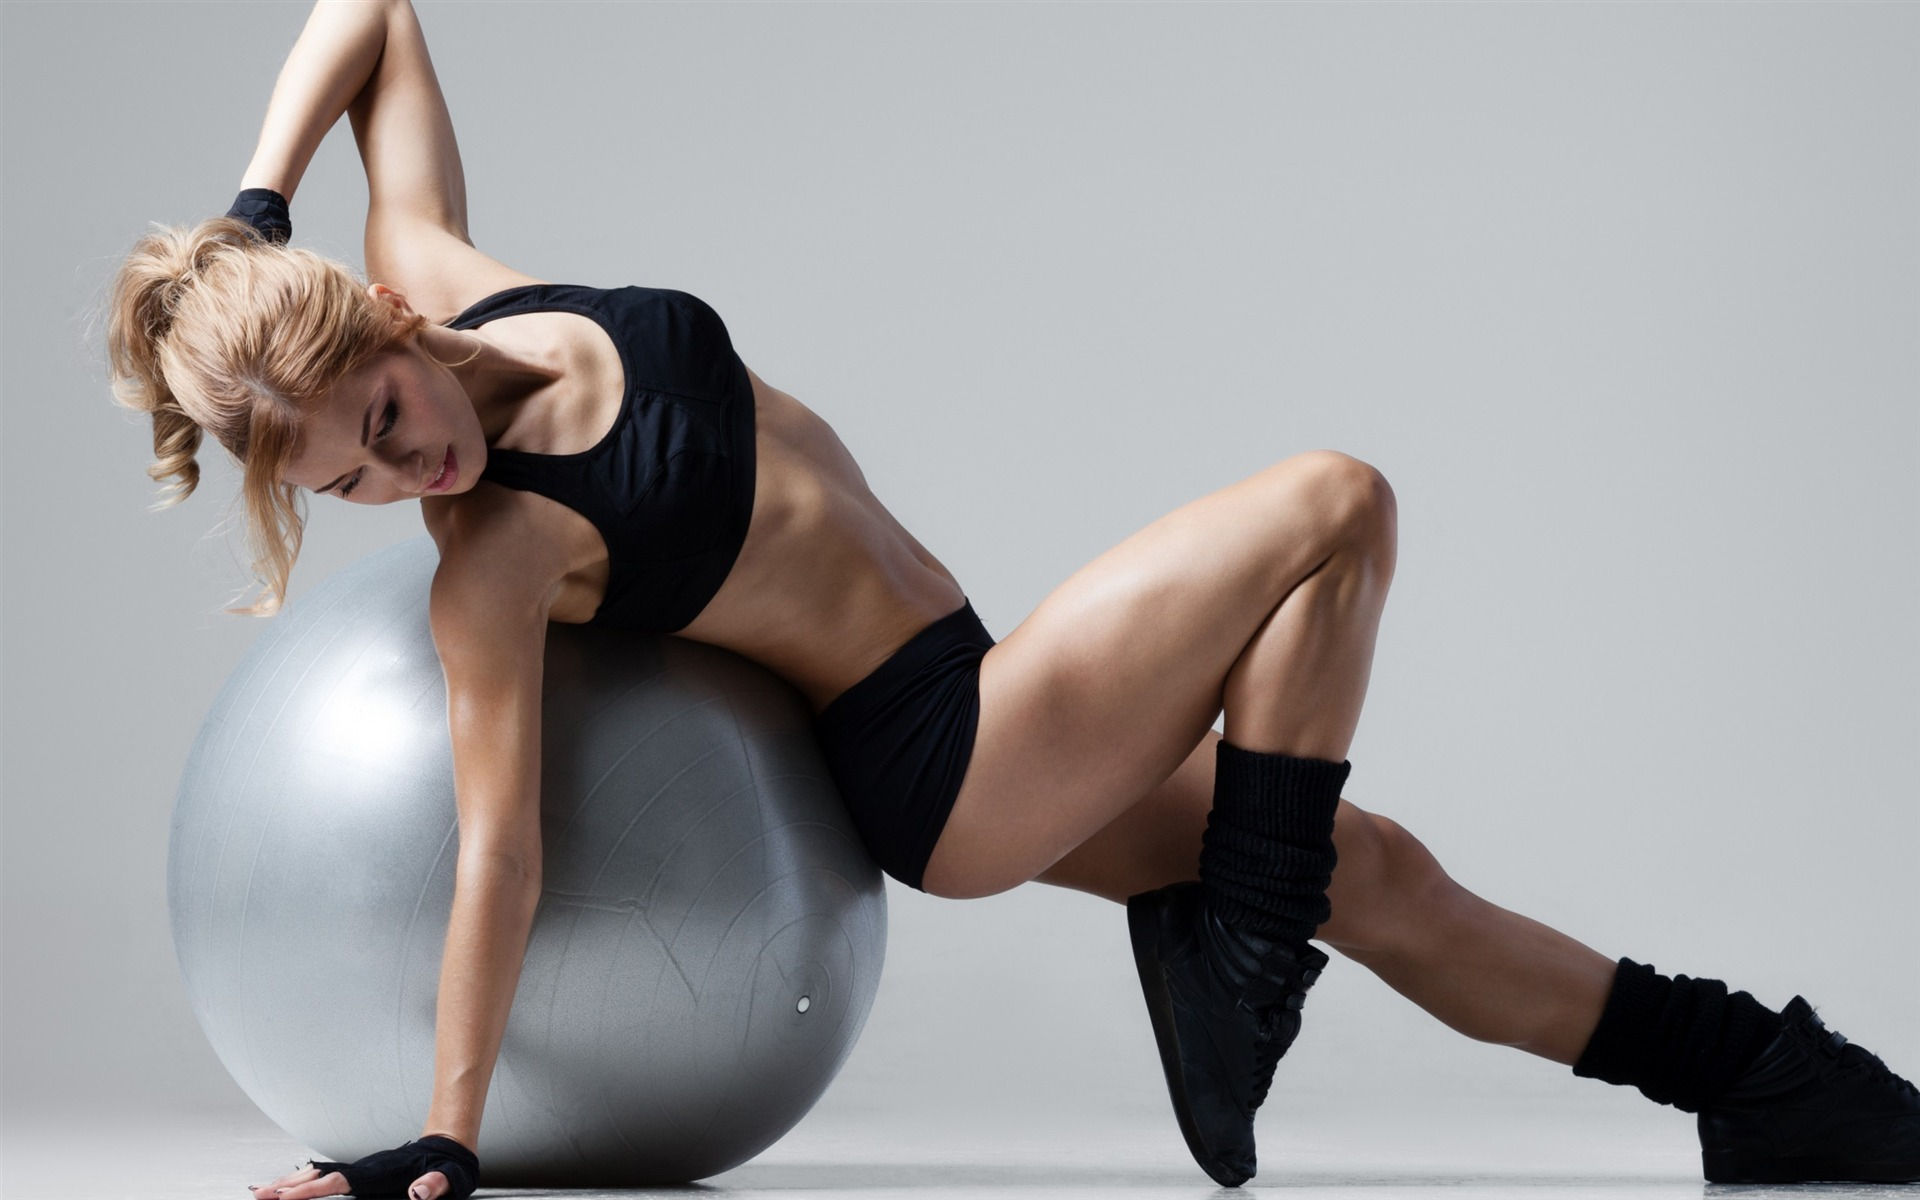 Fit Girl weight loss gym ball-fitness photo high quality 1920x1200